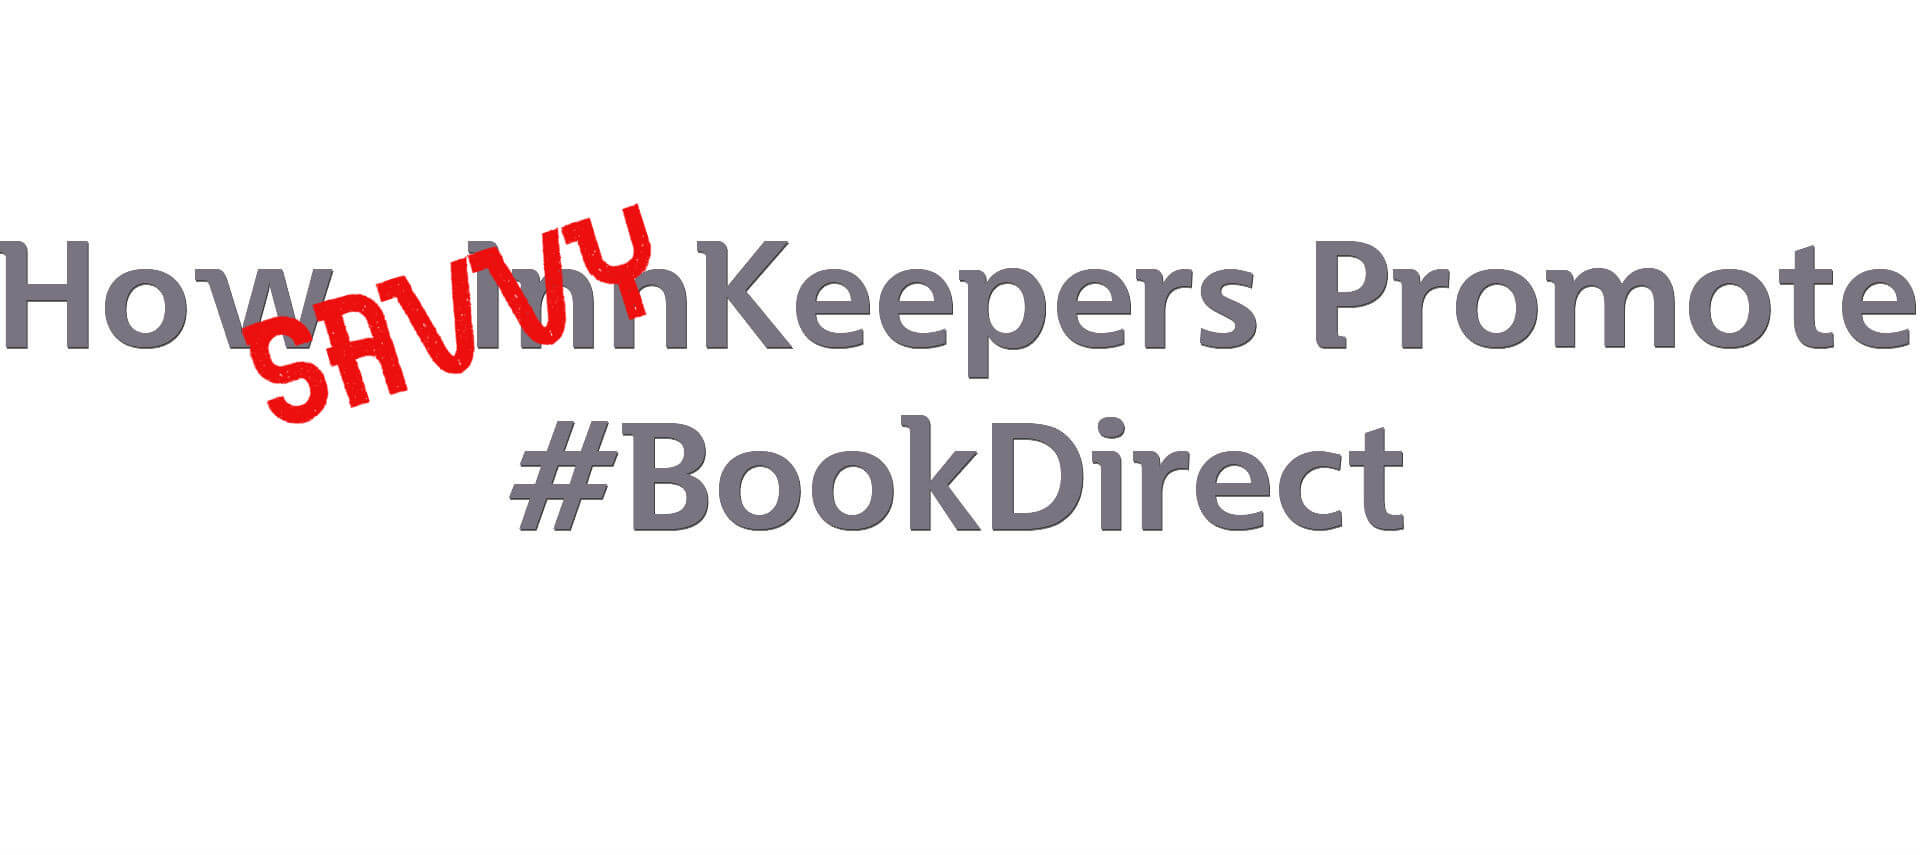 Text: How SAVVY Innkeepers promote Bookdirect